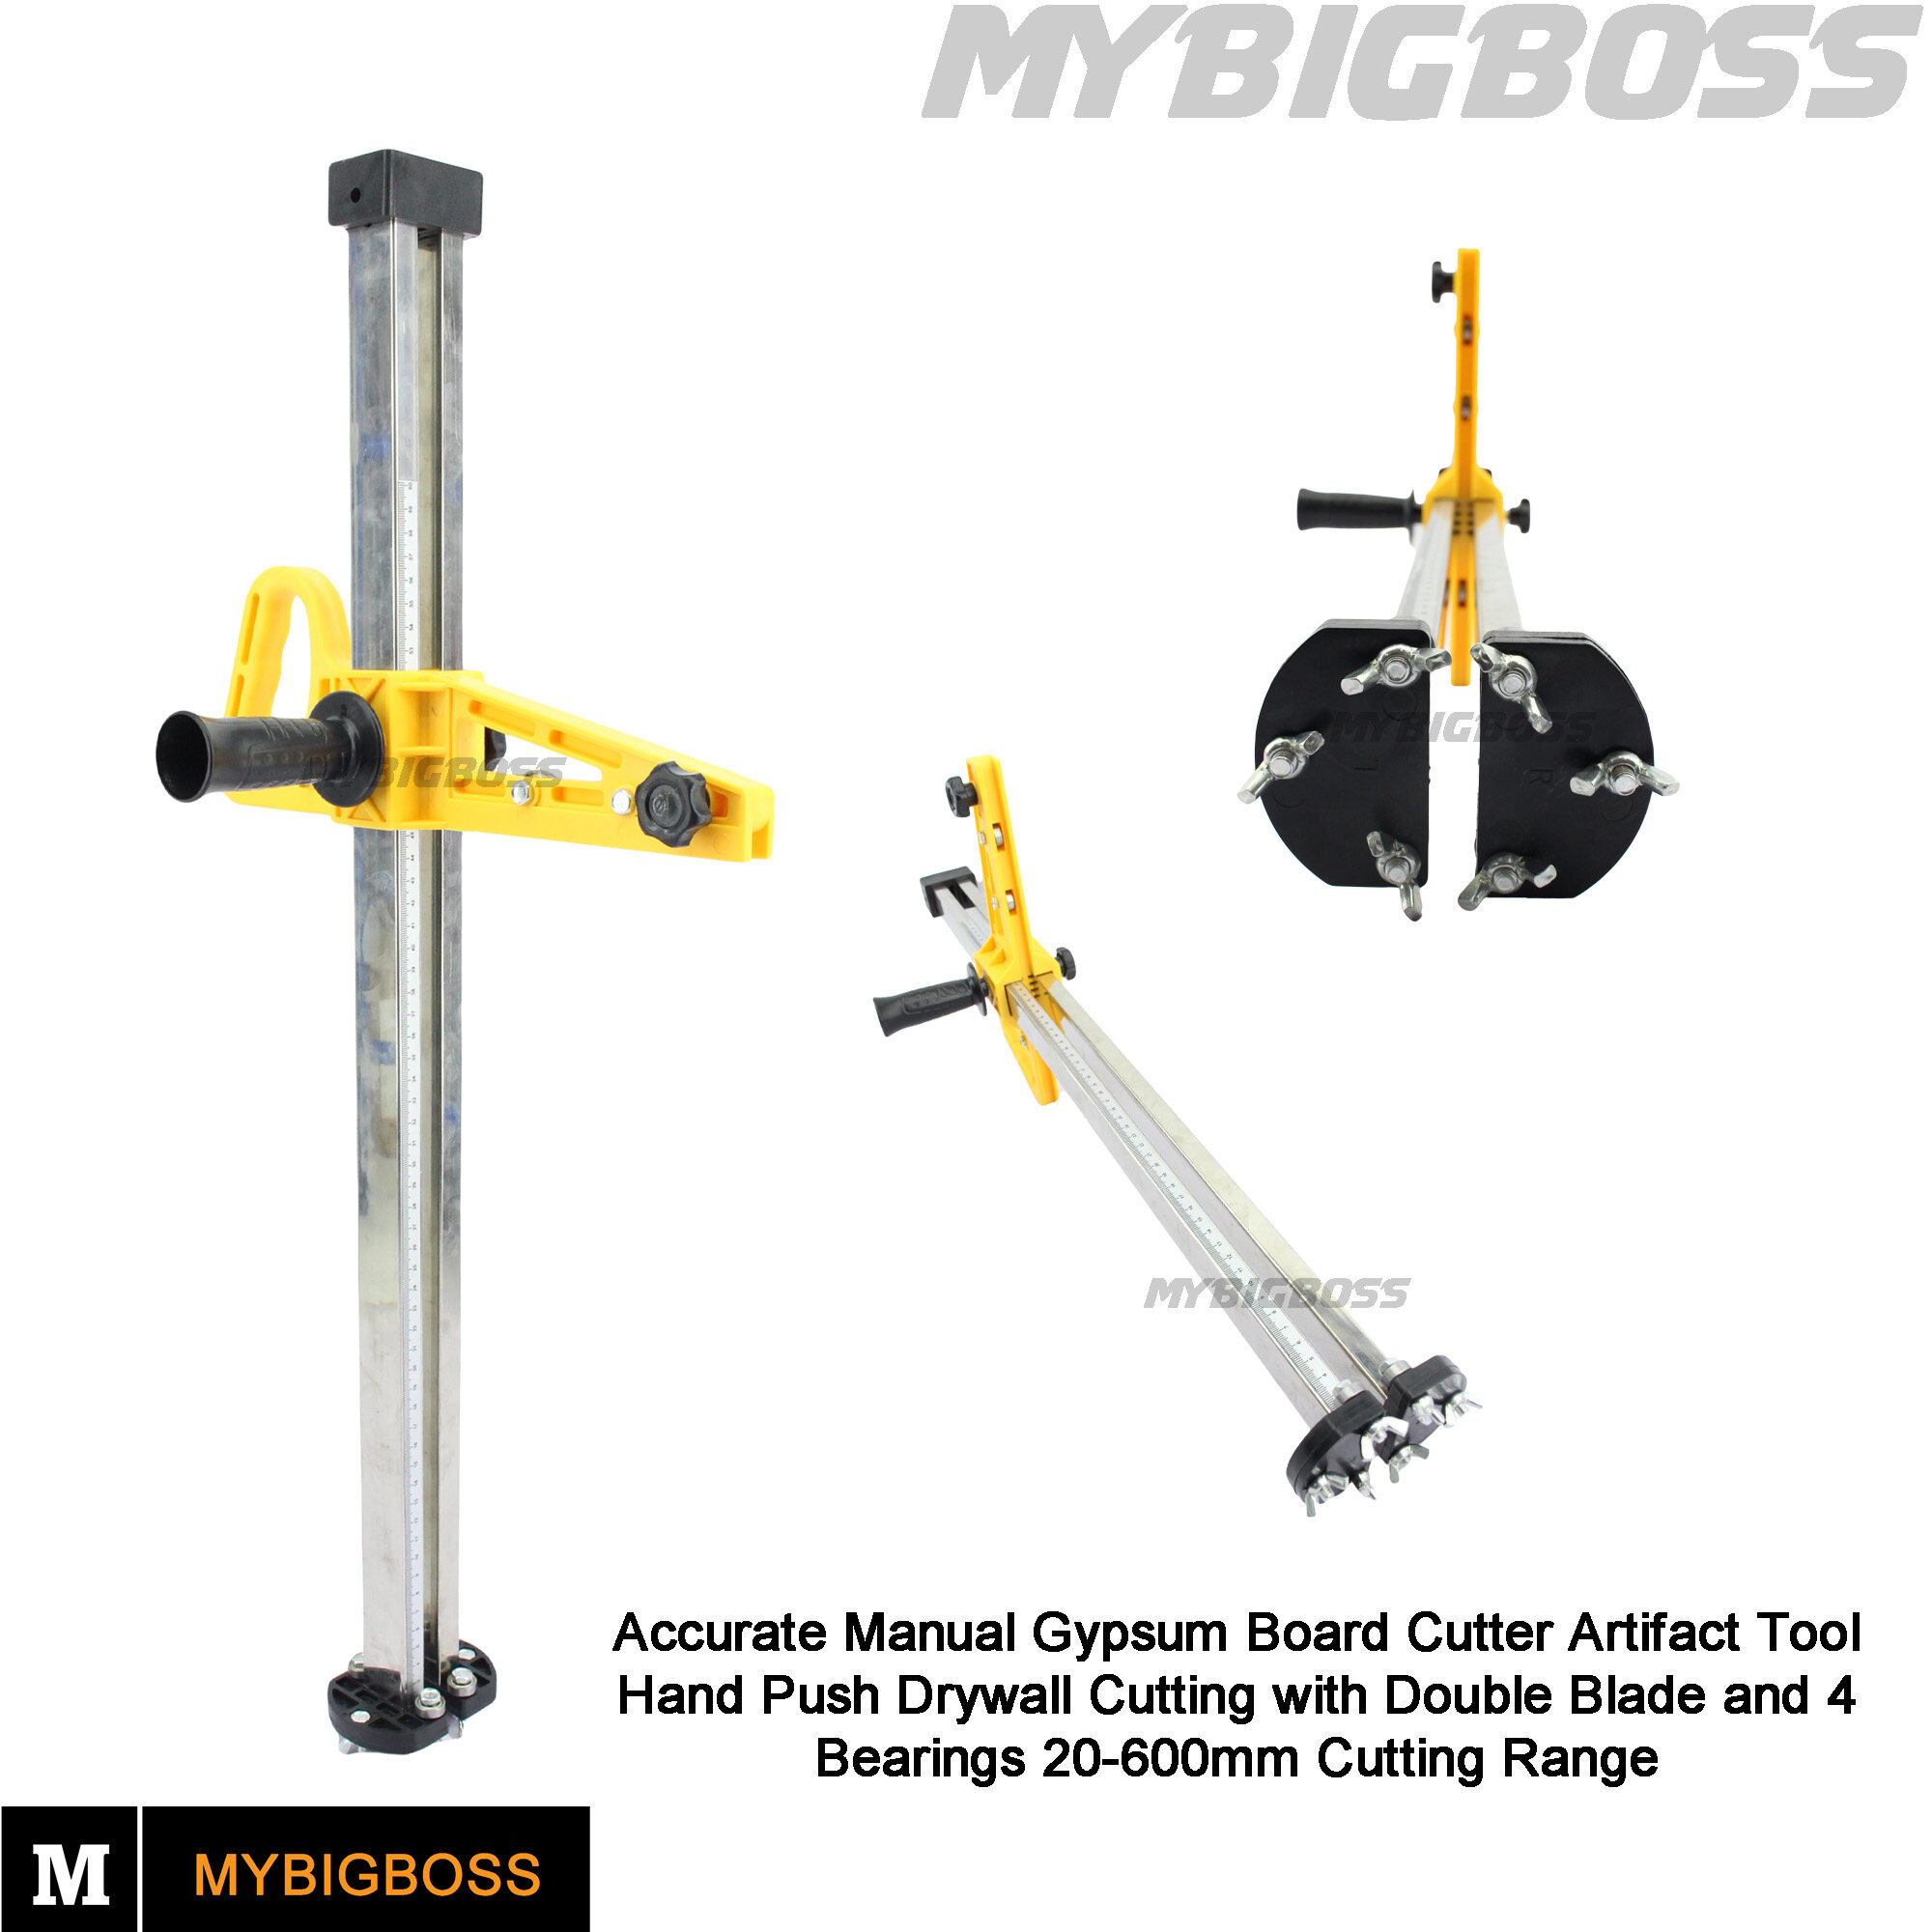 MY BIG BOSS - Manual High Accuracy Portable Gypsum Board Cutter Hand Push Drywall Cutting Artifact Tool with Double Blade and 4 Bearings 20-600mm Cutting Range